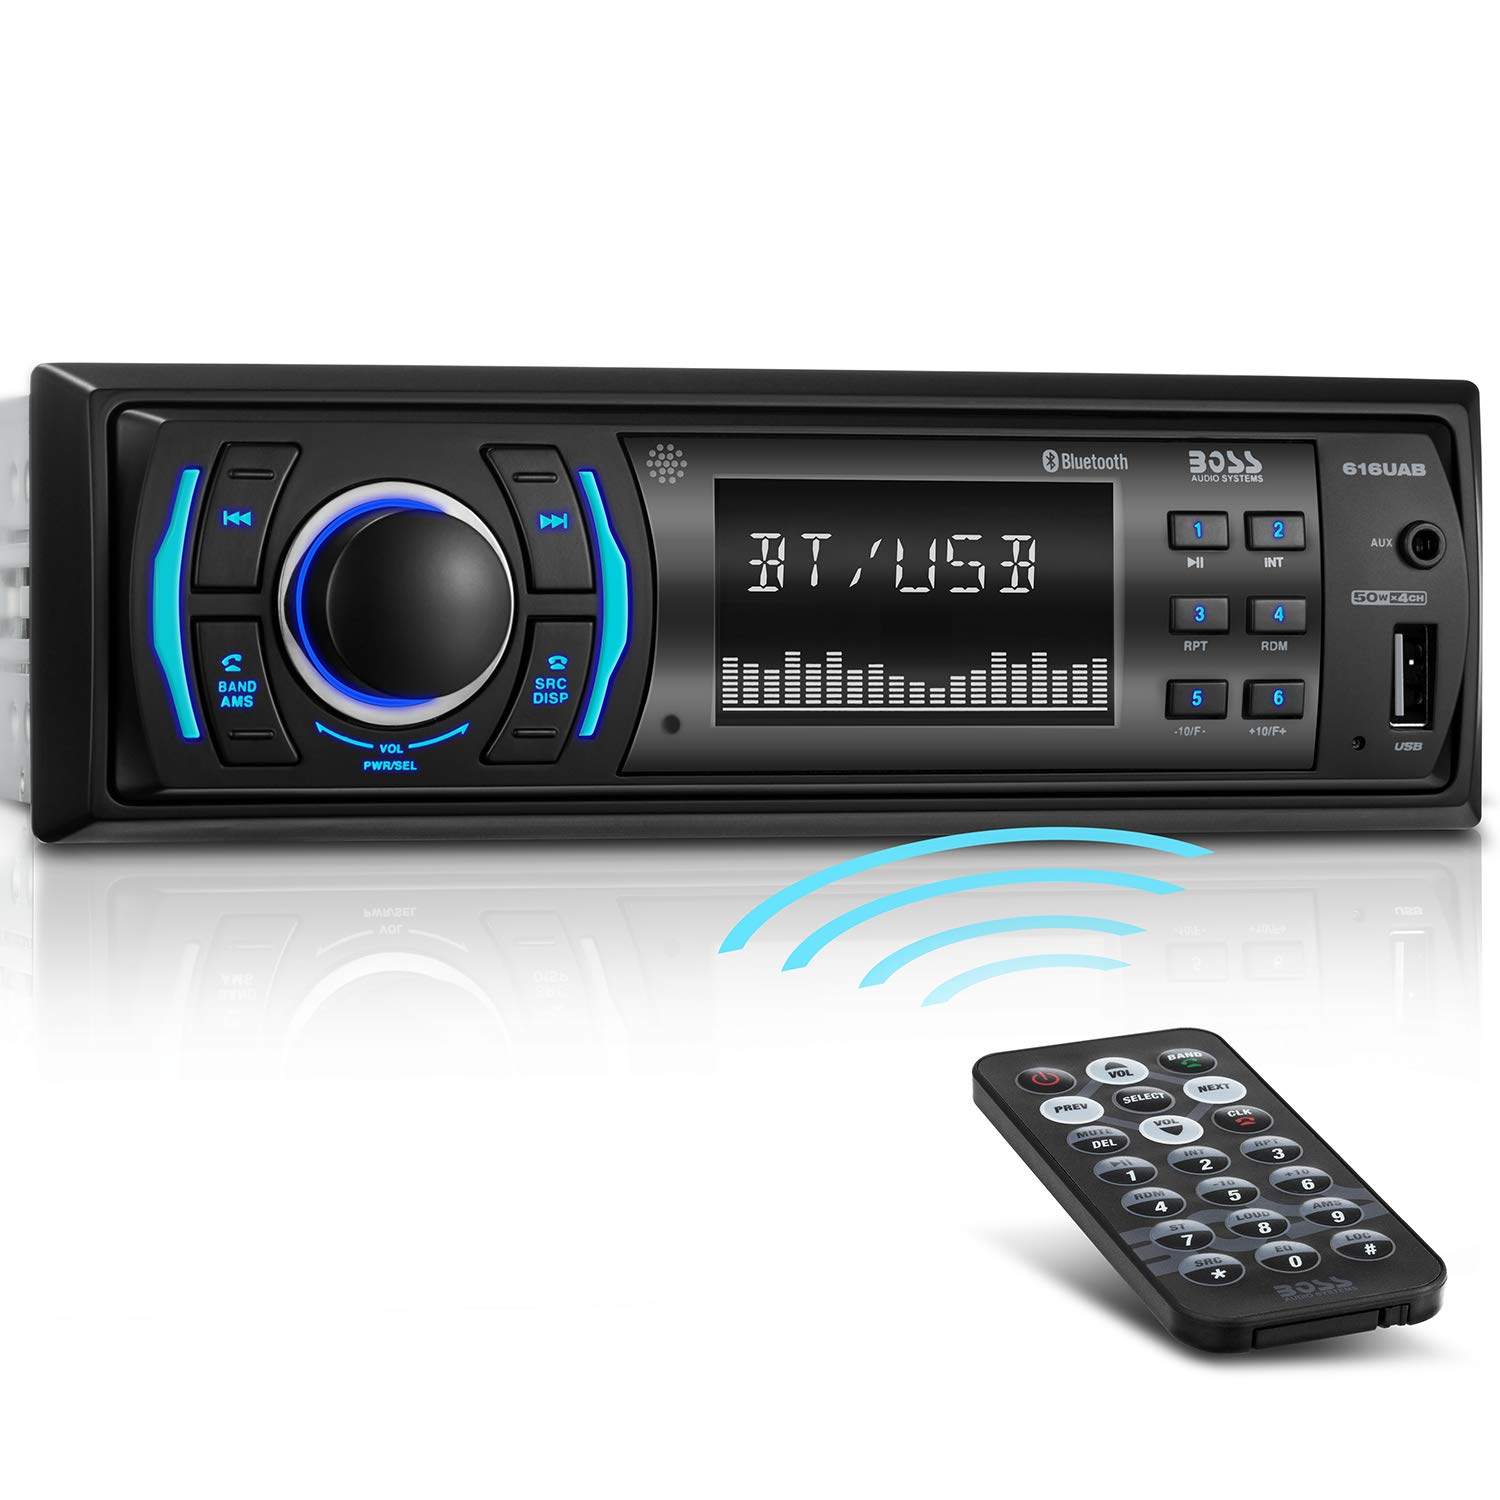 BOSS Audio Systems 616UAB Multimedia Car Stereo - Single Din LCD, Bluetooth Audio and Hands-Free Calling, Built-in Microphone, MP3/USB, Aux-in, AM/FM Radio Receiver by BOSS Audio Systems